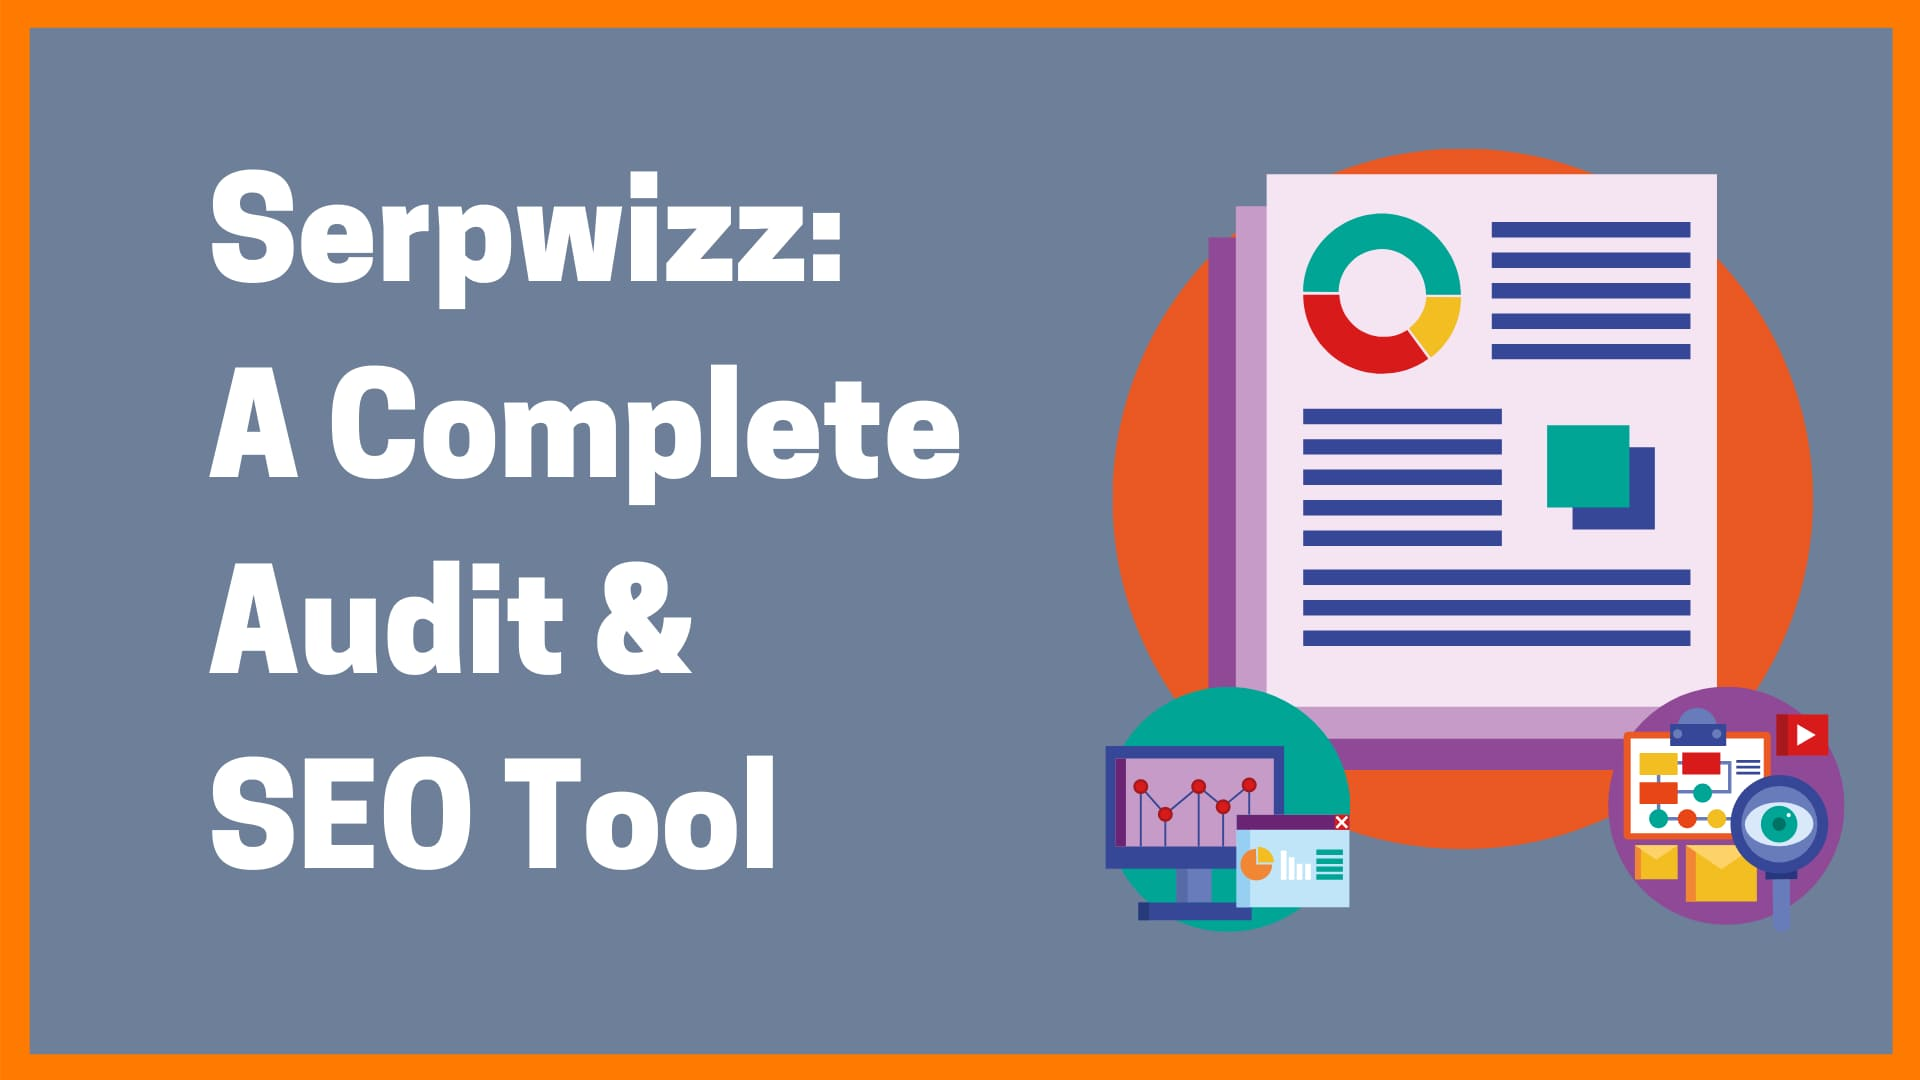 Serpwizz: A Complete Audit Tool & SEO Wizard